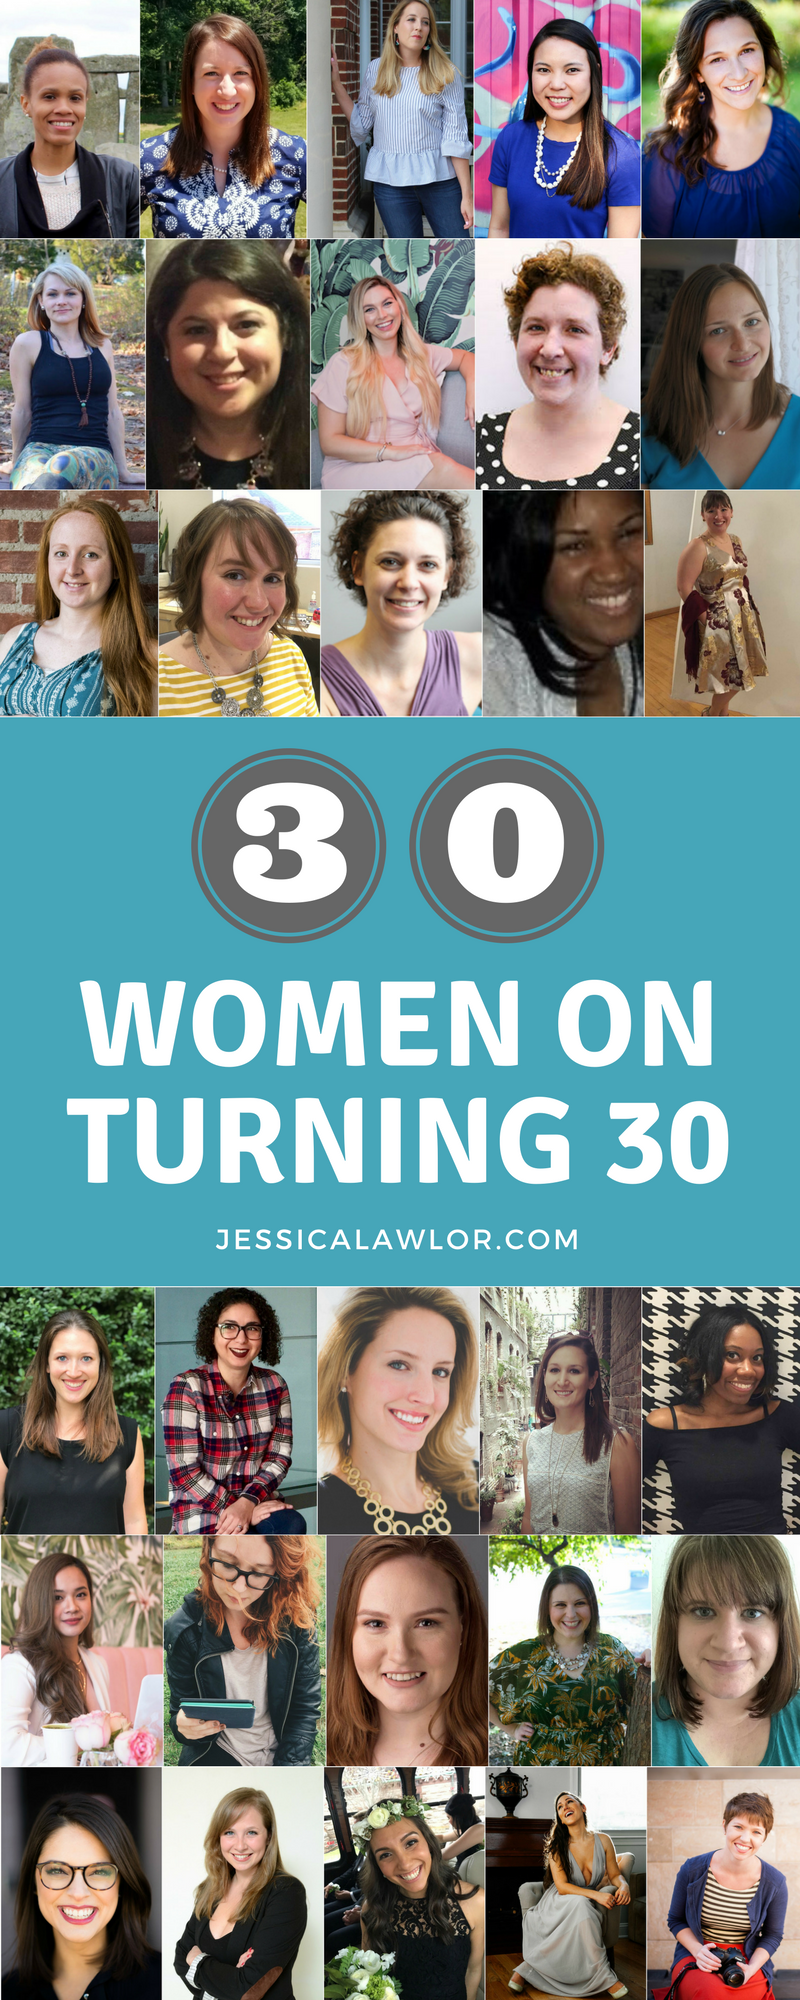 Anxious about turning 30? Be inspired by these words of wisdom from 30 women who've been there and say the best is yet to come.